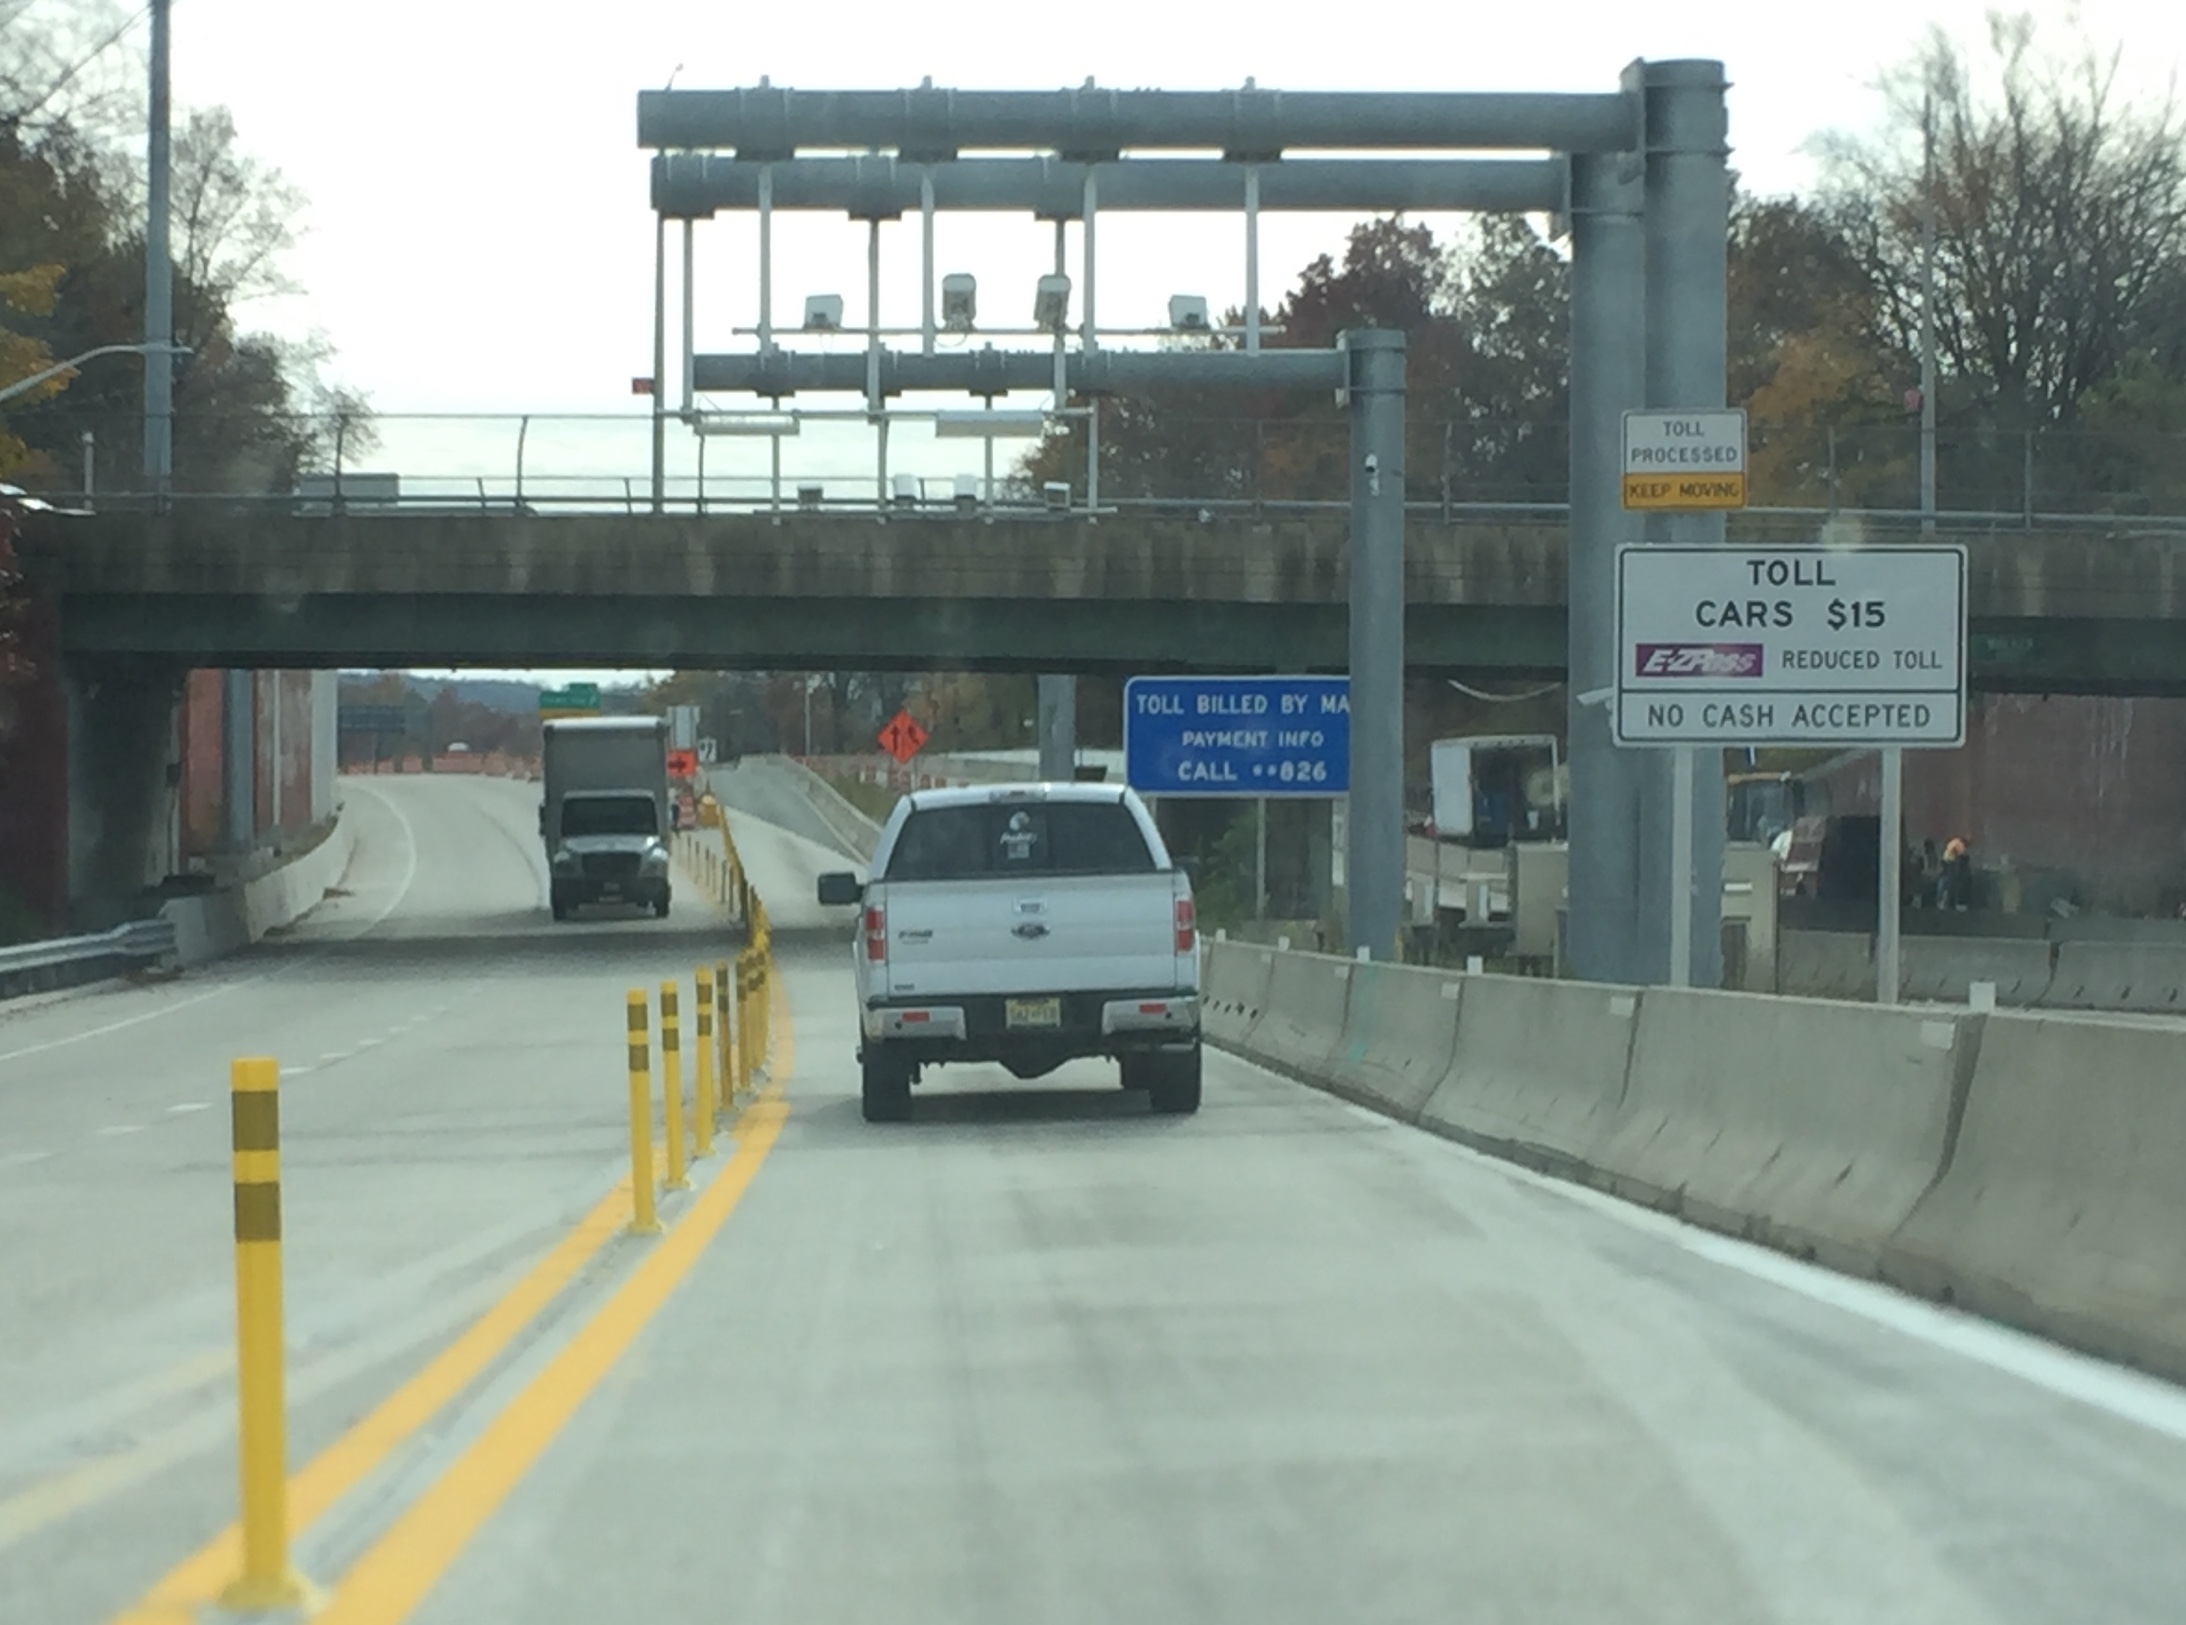 Pay Tolls Online Nyc >> Outerbridge Crossing Goes Cashless At The Tolls Next Week